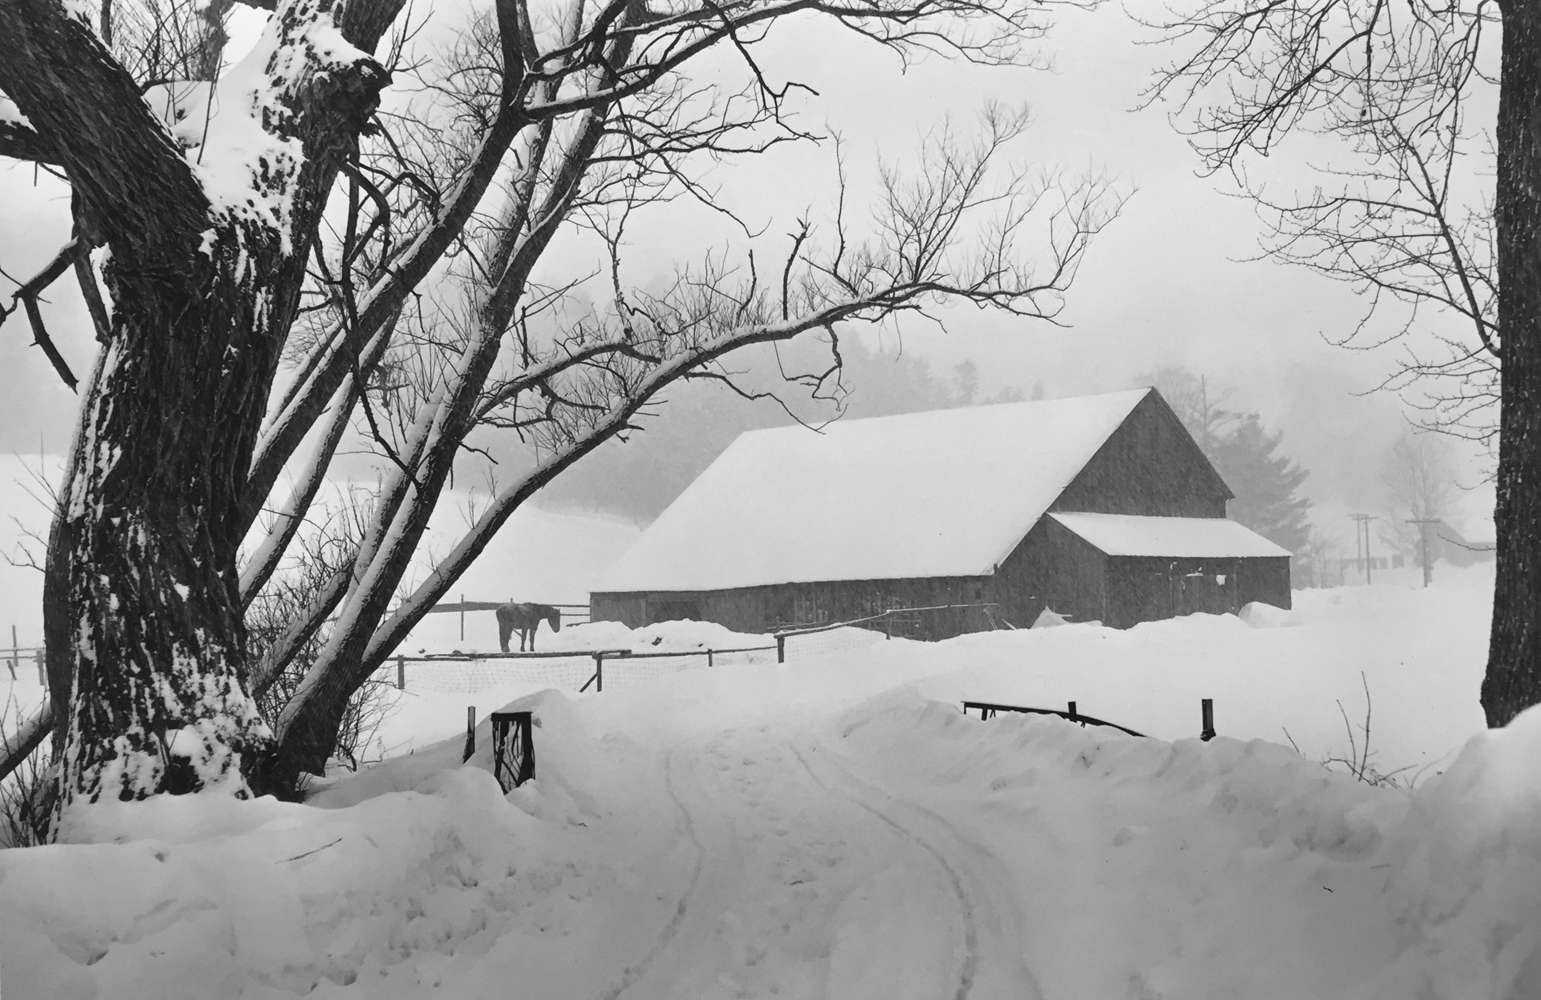 Marion Post Wolcott, Barnyard blizzard, Near Woodstock, Vermont, 1940, gelatin silver print, 11 x 14 inches, price on request